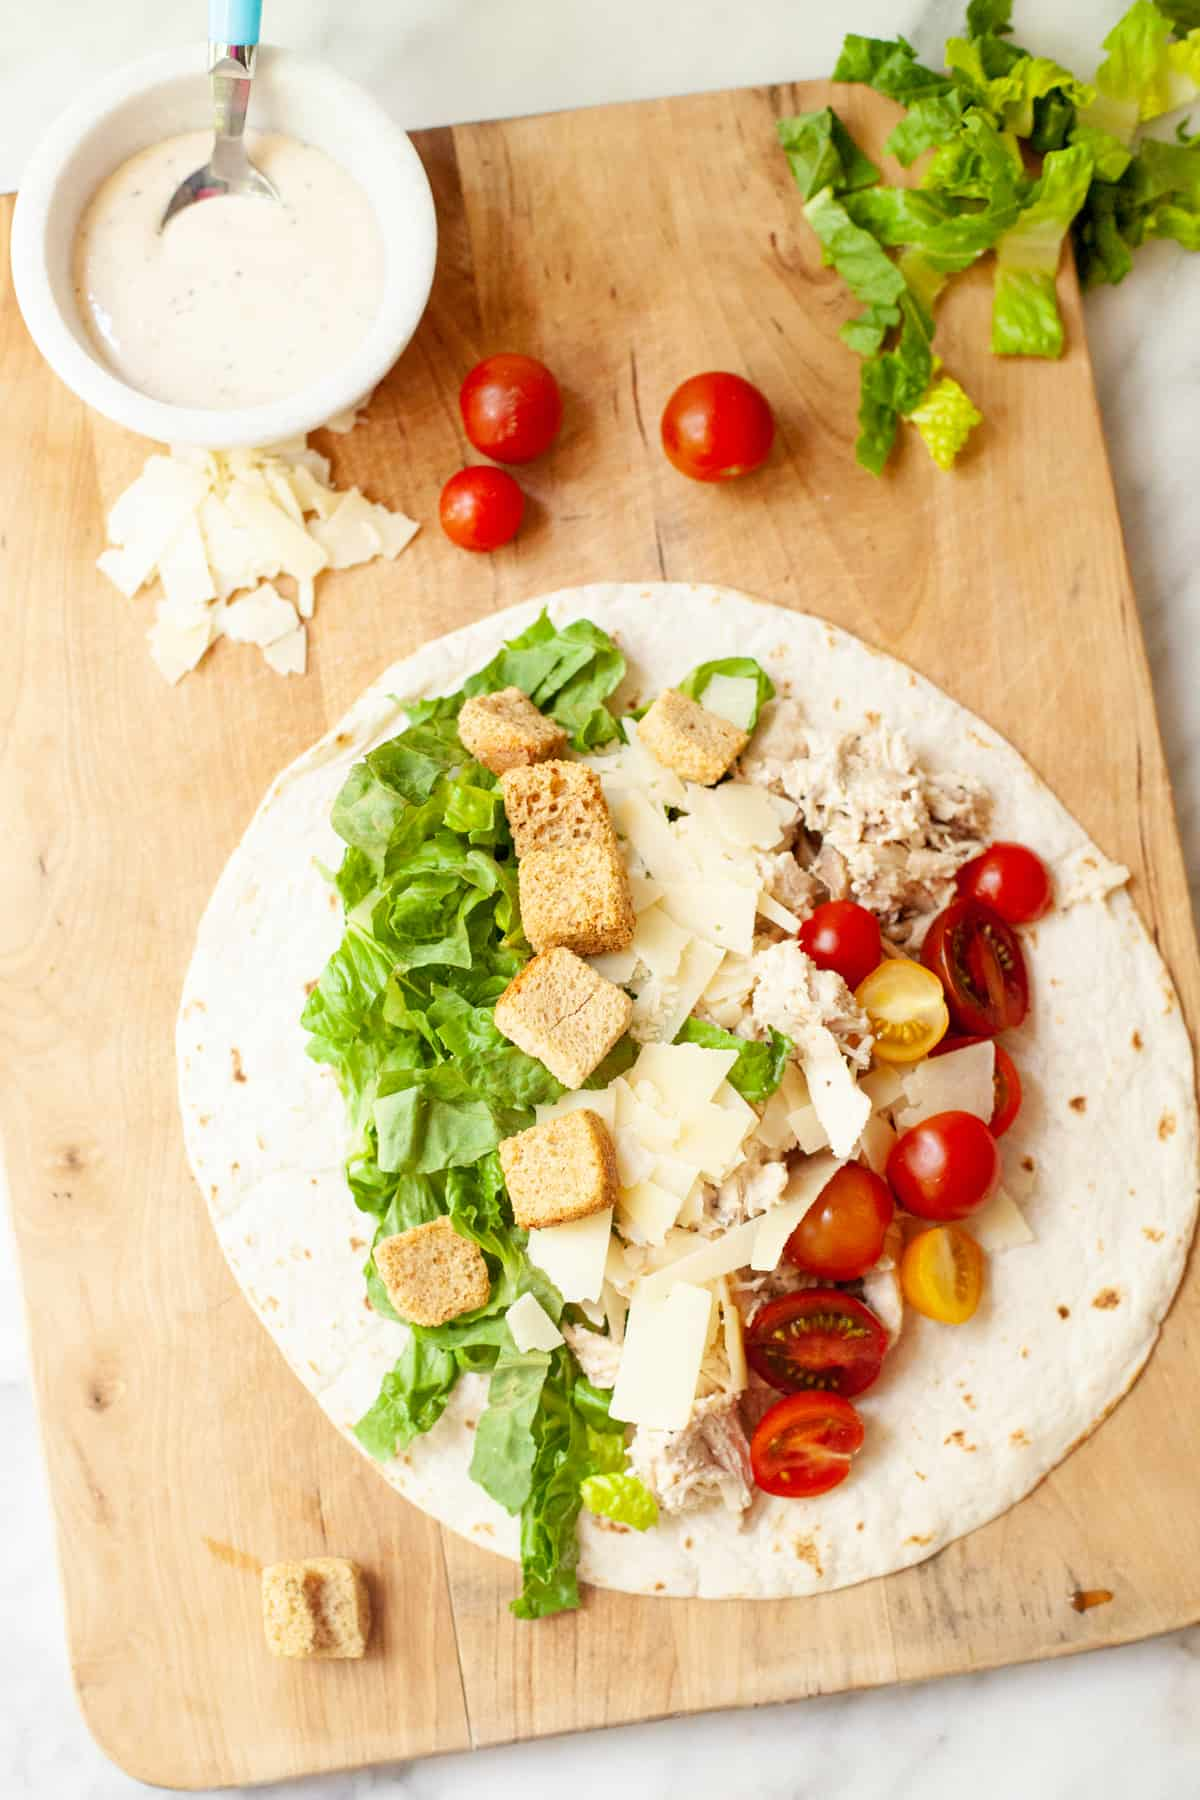 Lettuce, croutons, cheese, chicken, and tomatoes are placed on a tortilla. Dressing and tomatoes also rest on wooden cutting board.